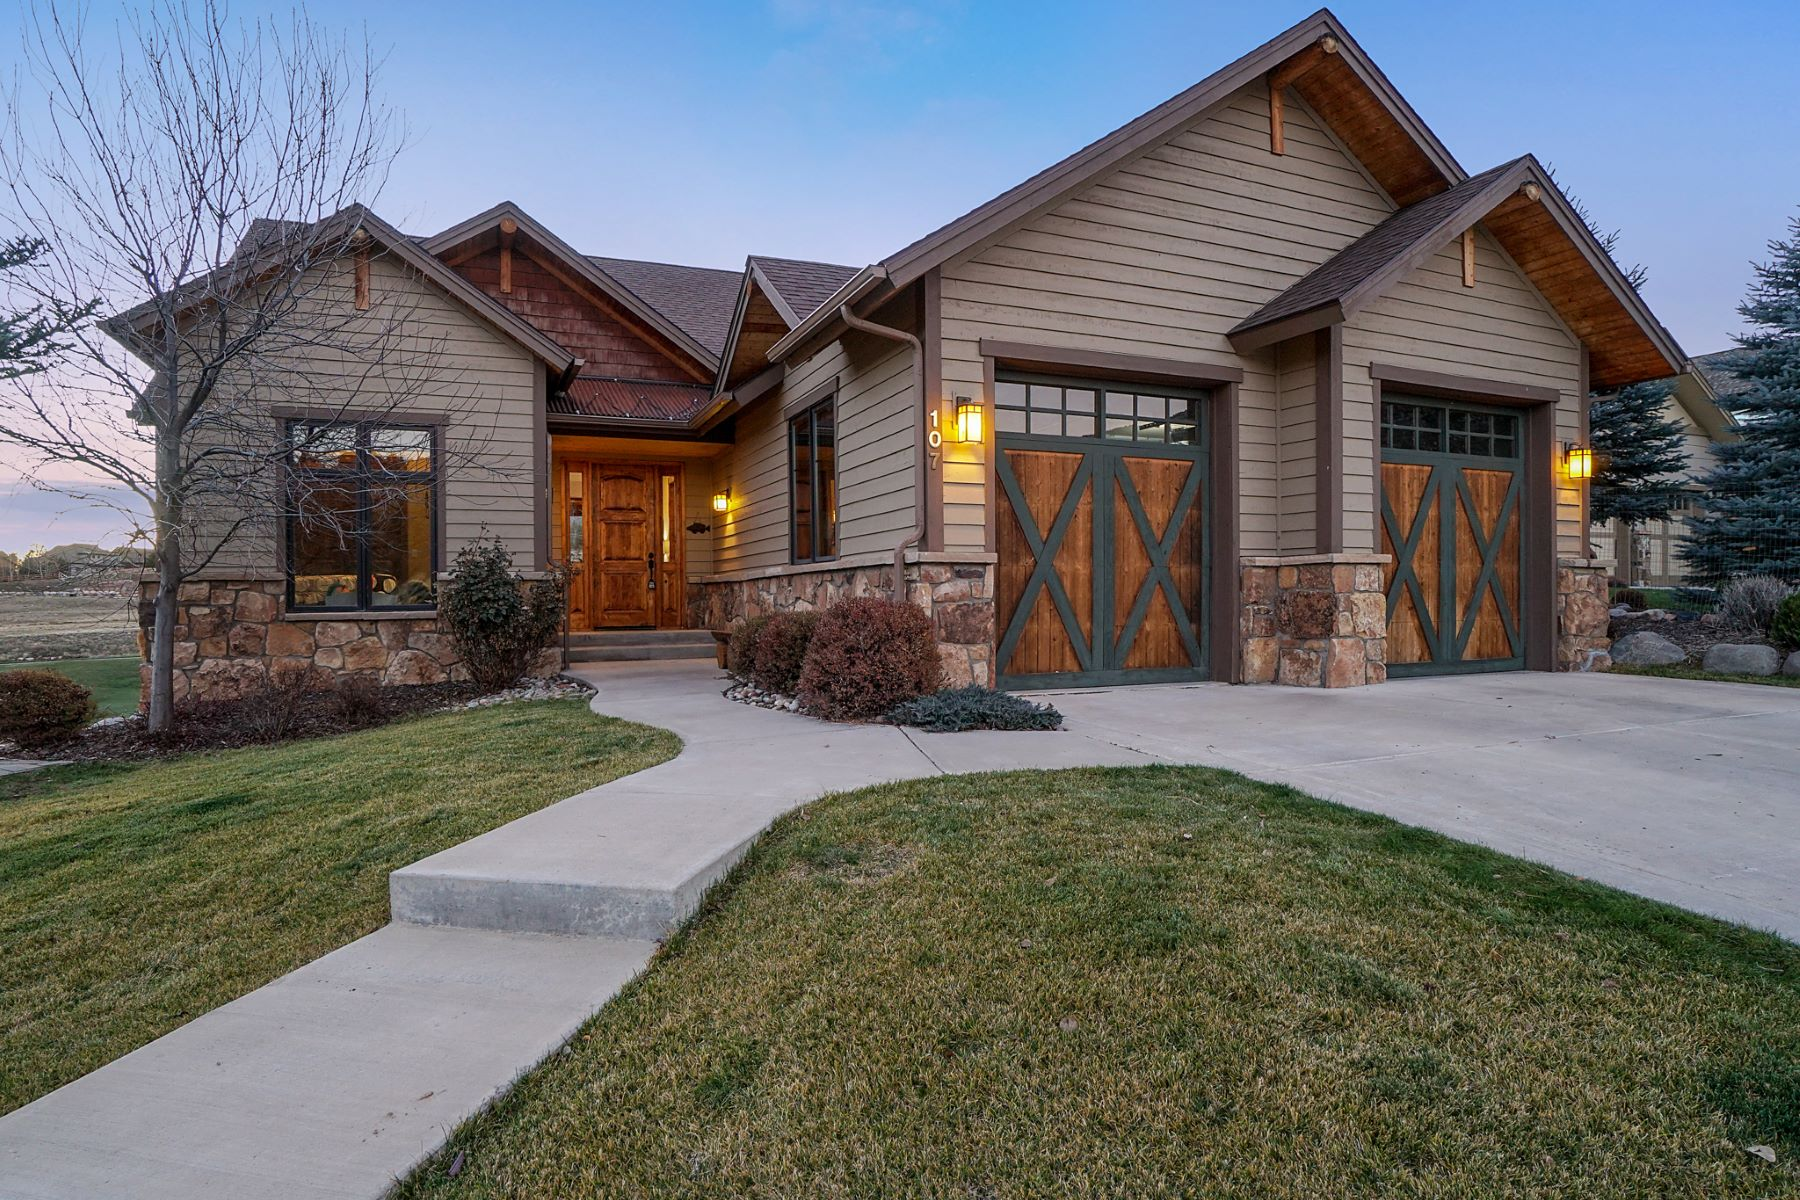 Single Family Home for Active at Extraordinary Custom Home 107 Spur Drive New Castle, Colorado 81647 United States